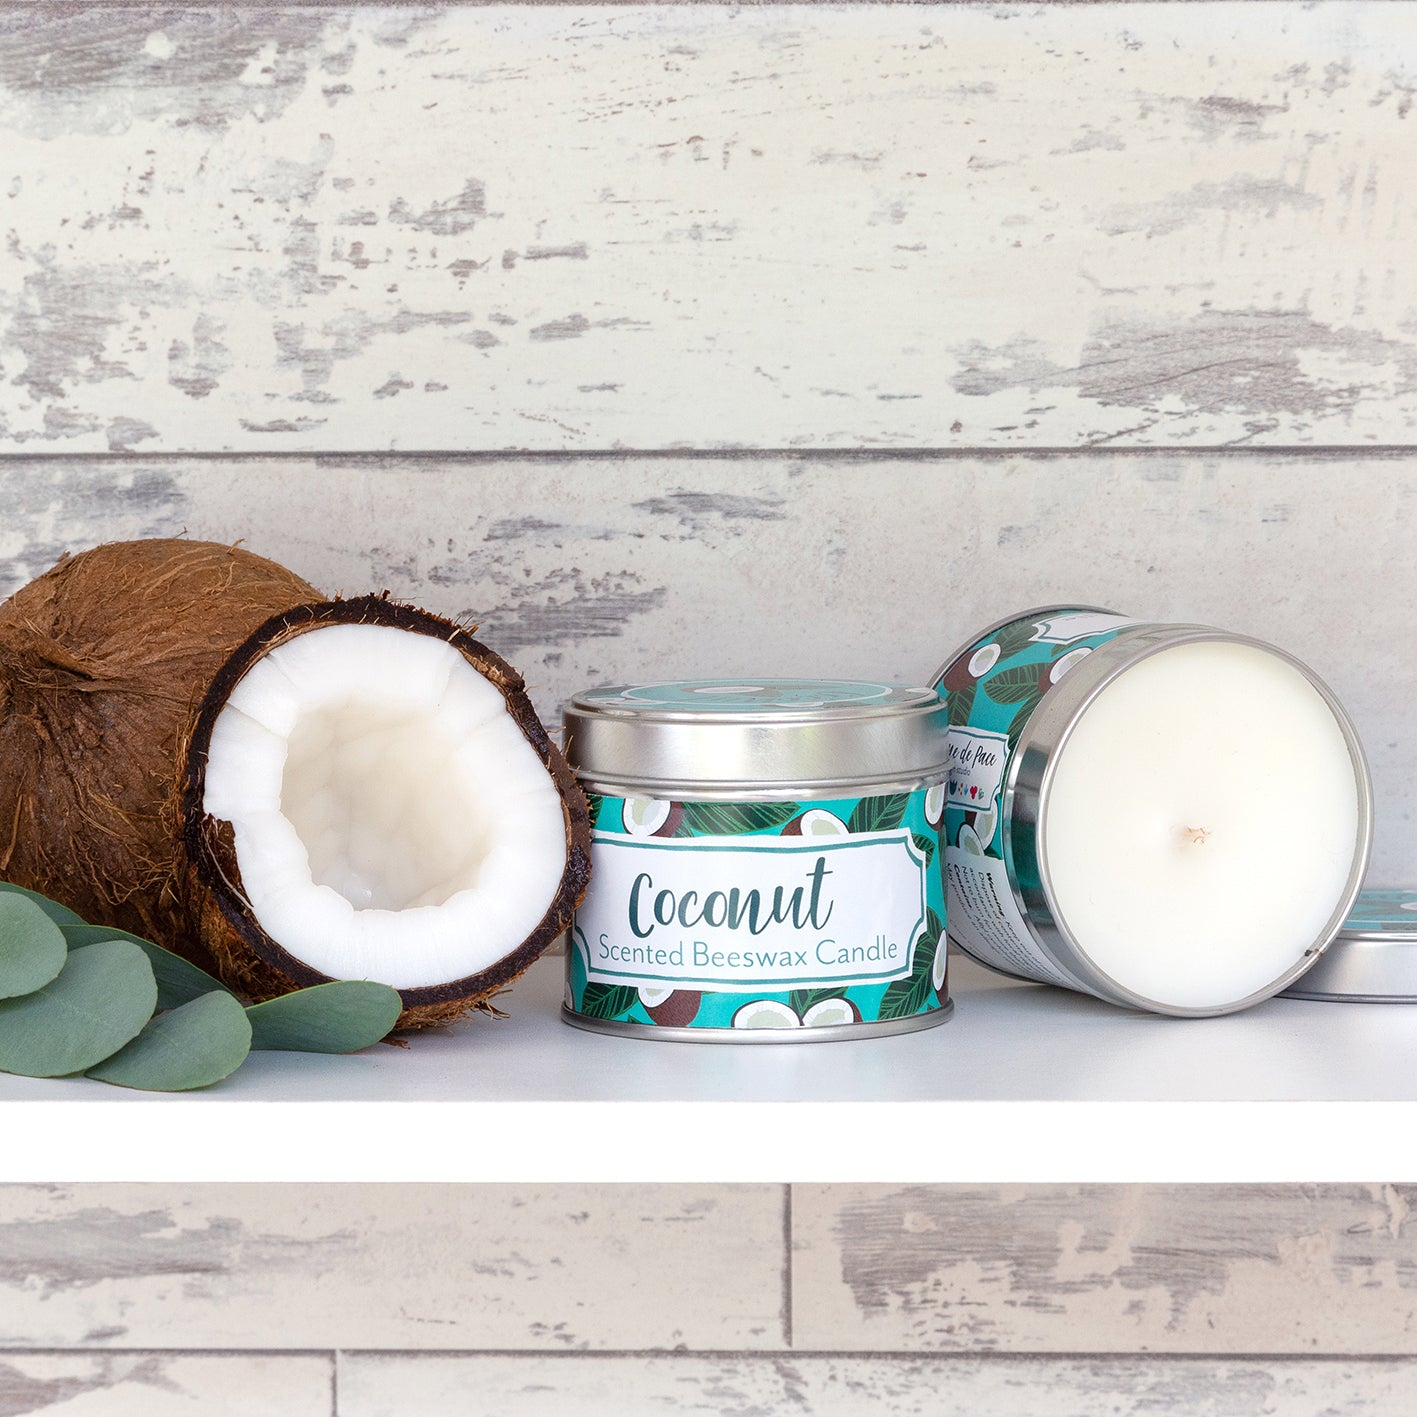 'Coconut' Scented Beeswax Candle